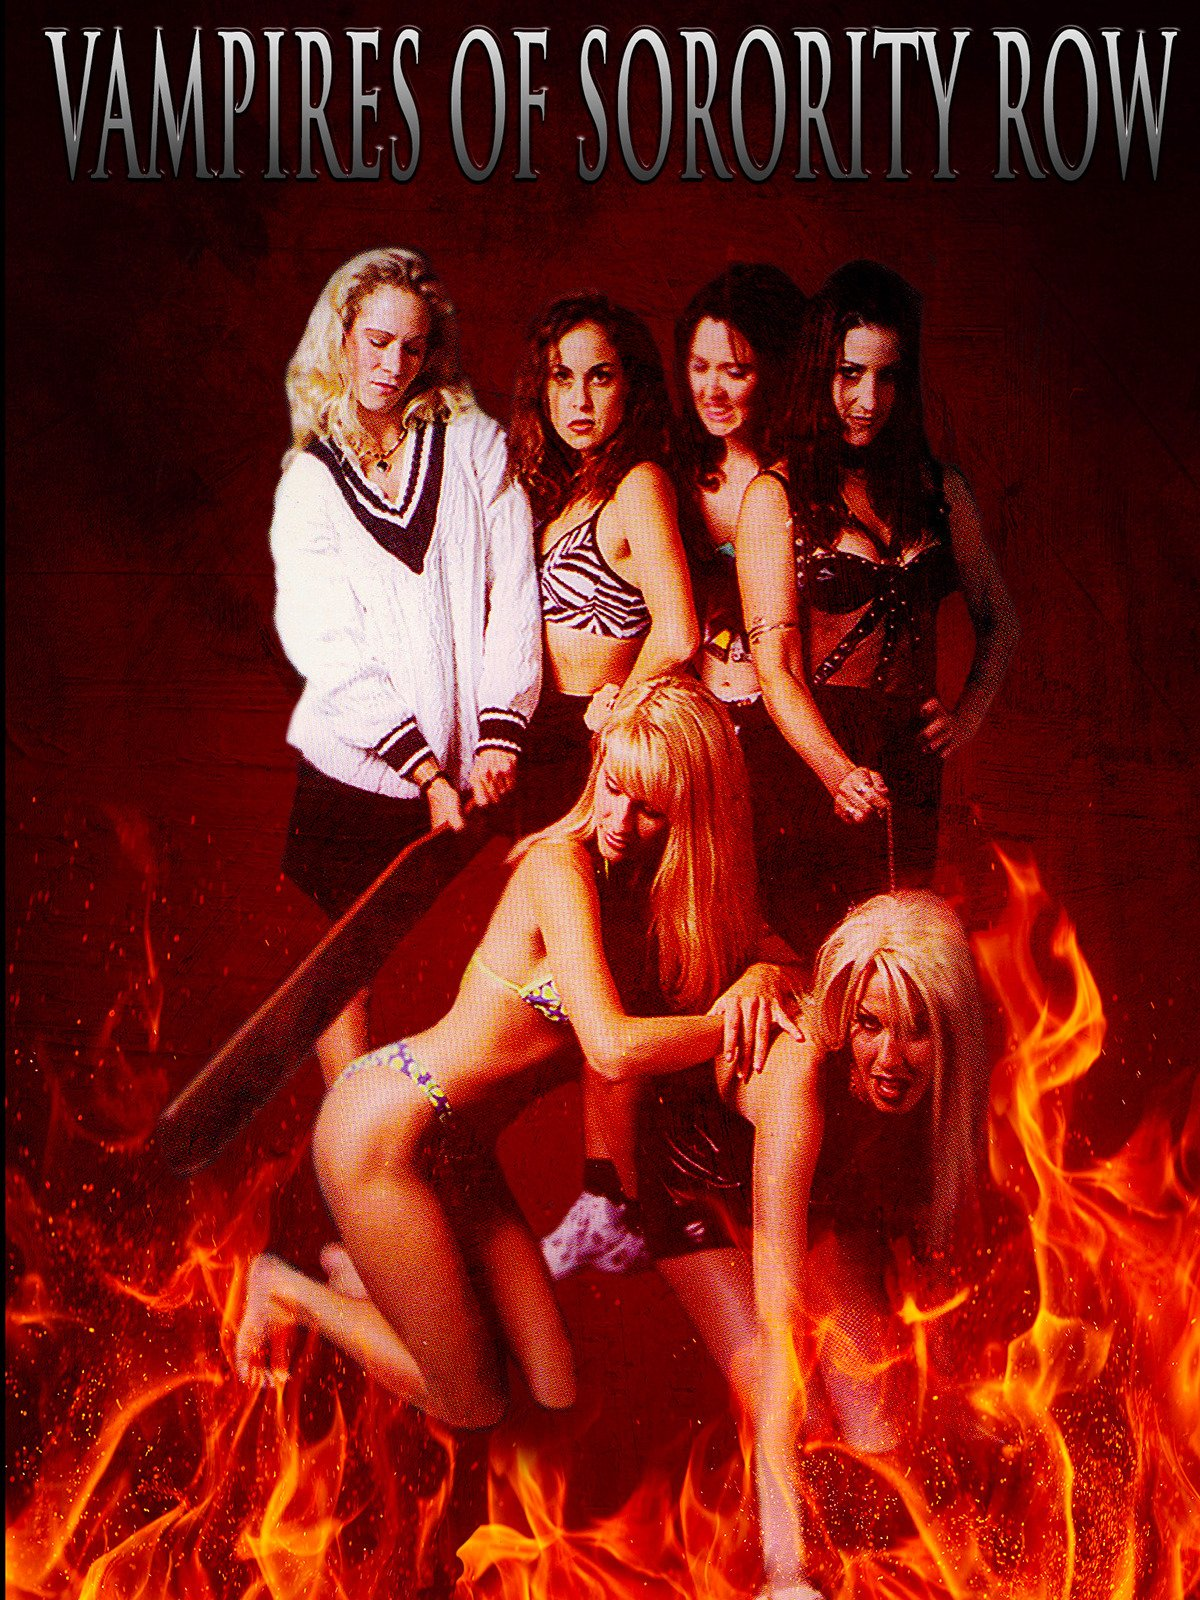 Vampires of Sorority Row